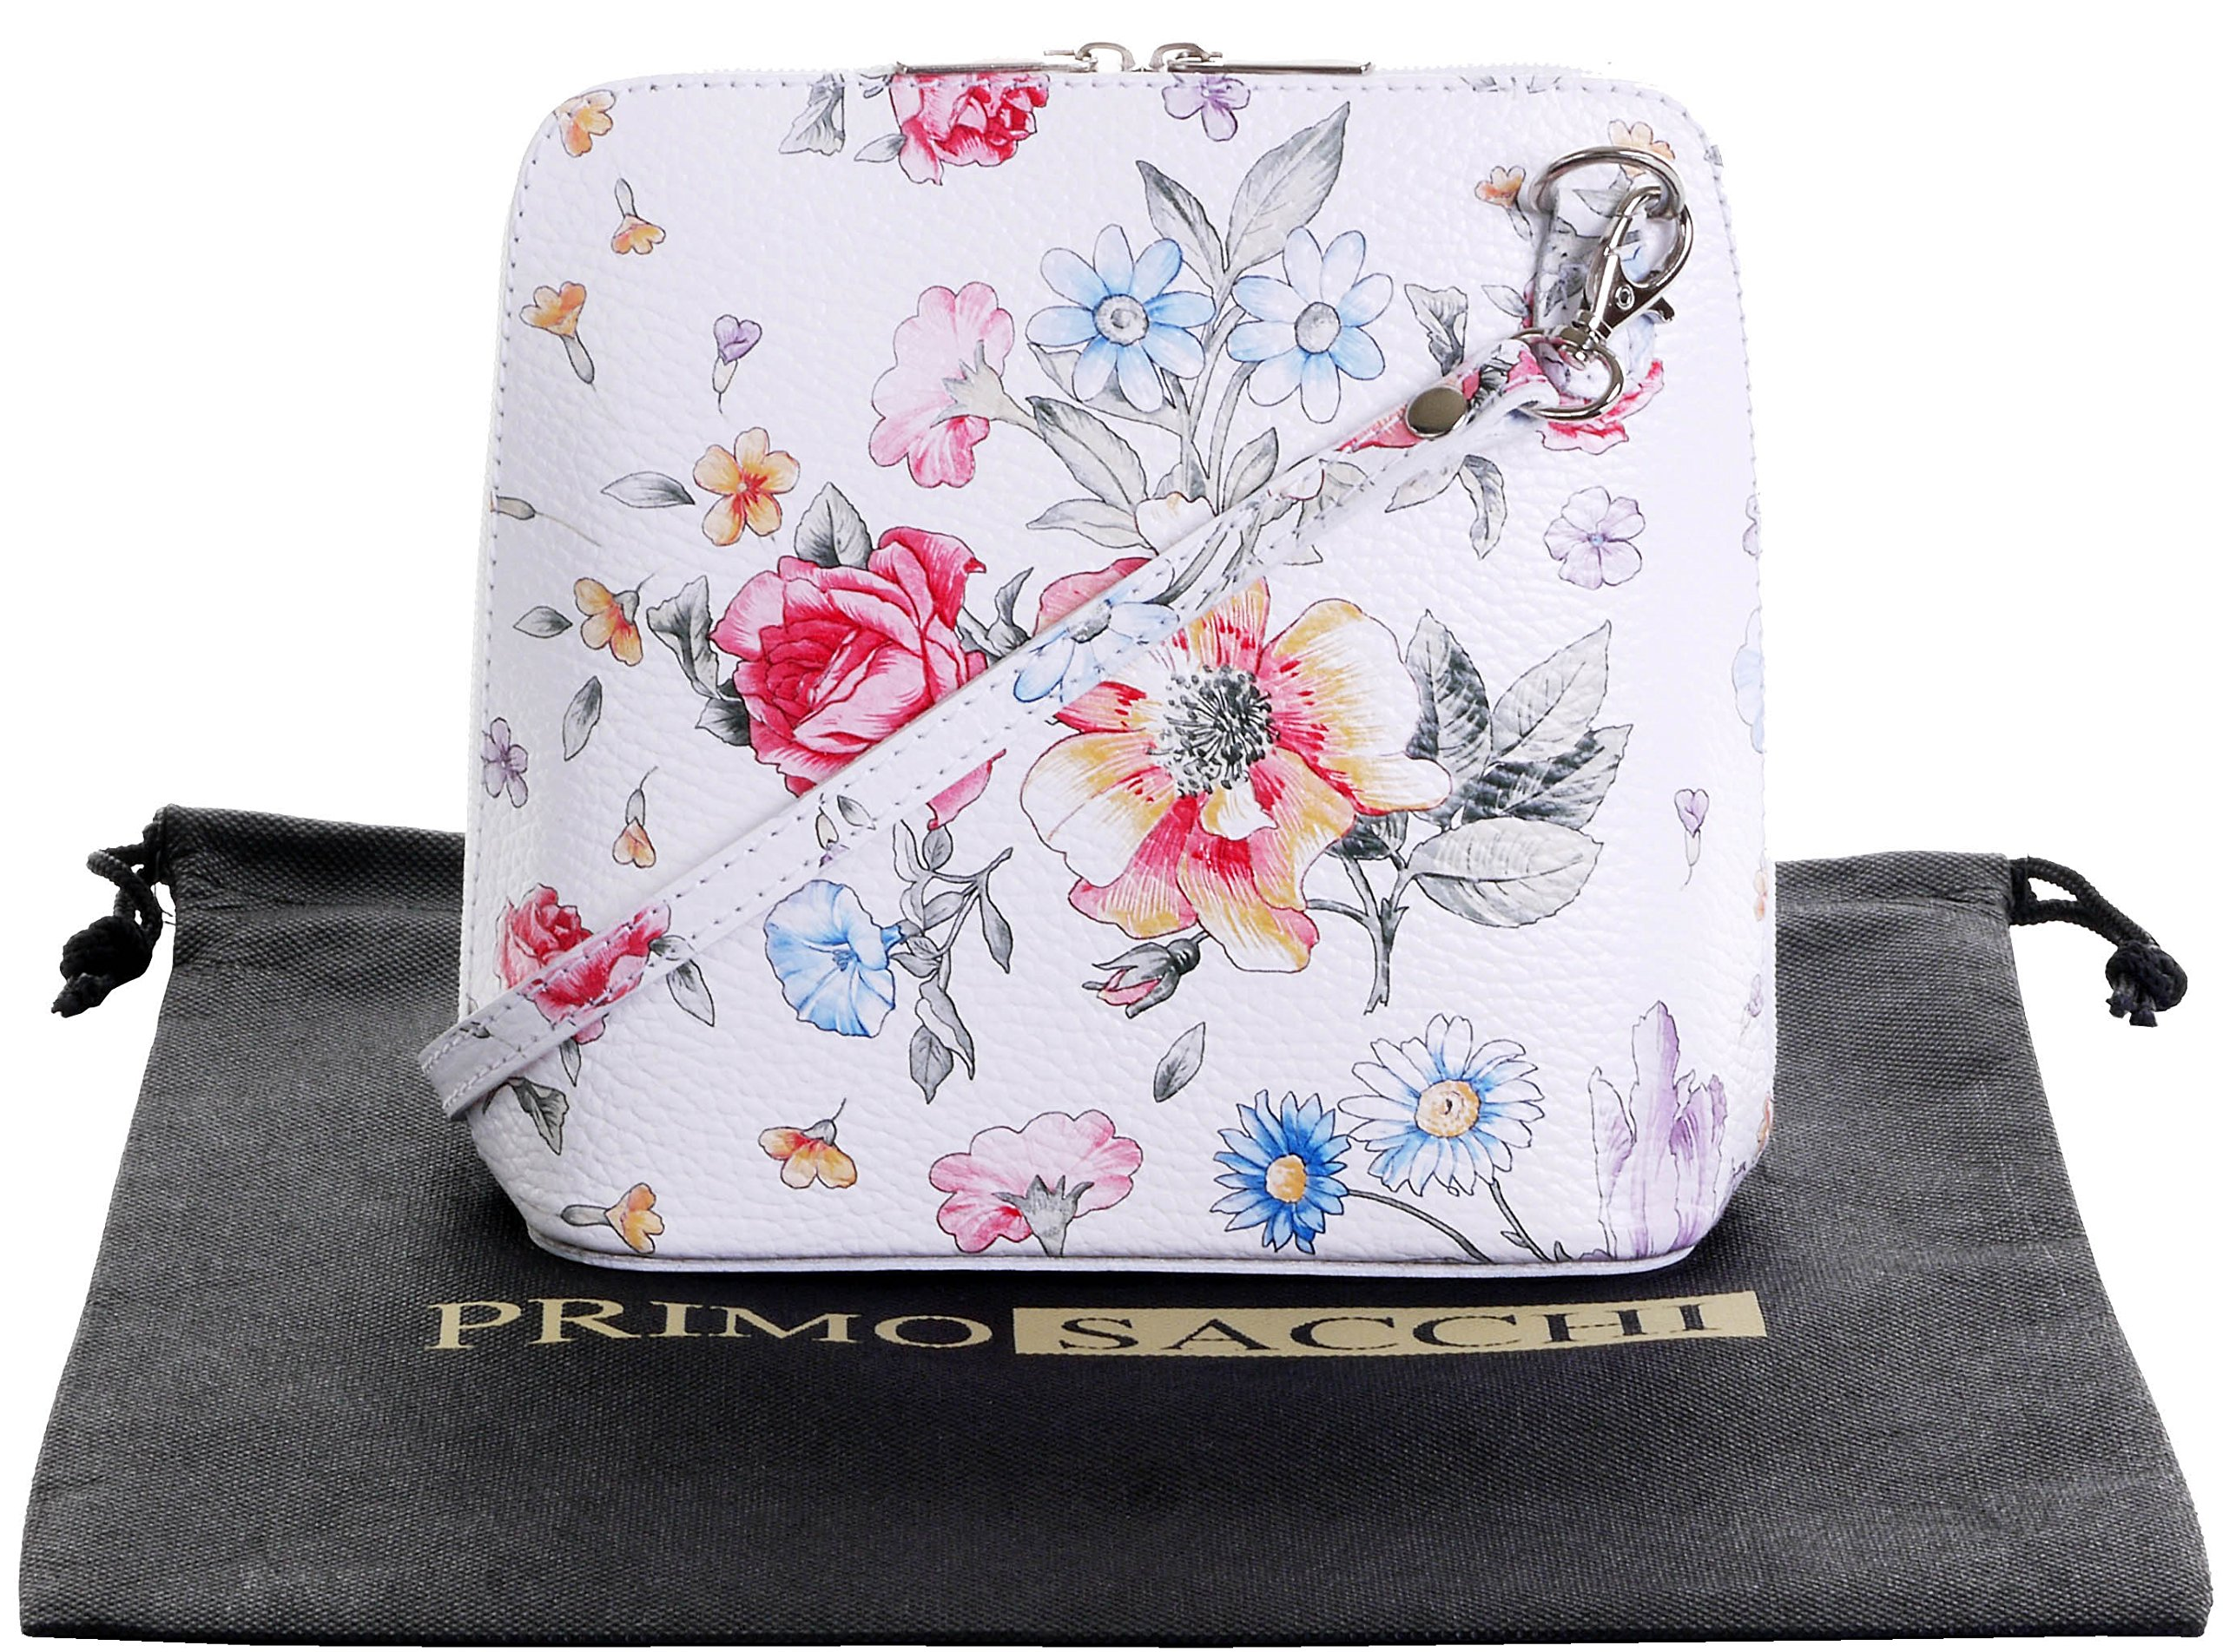 Italian Leather, Floral White Small/Micro Cross Body Bag or Shoulder Bag Handbag. Includes Branded a Protective Storage Bag.